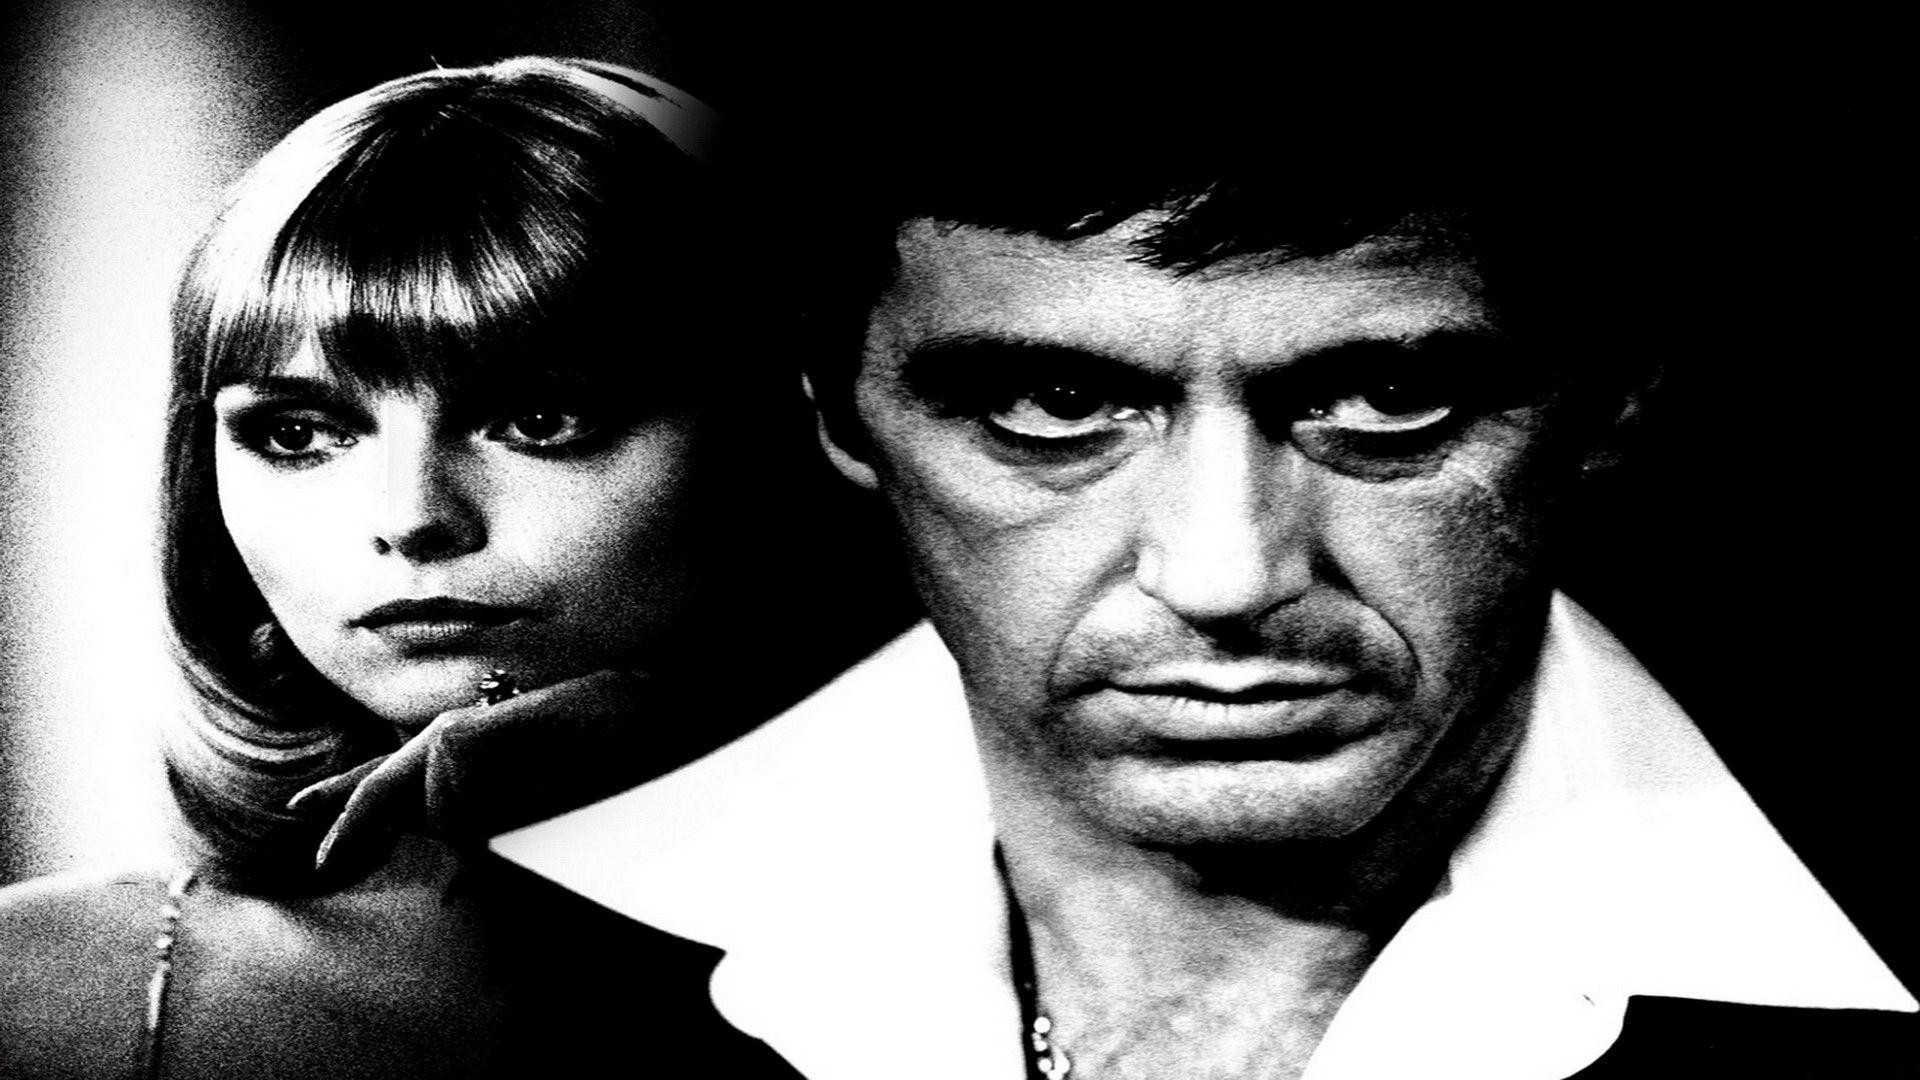 Scarface-Wallpapers-Scarface-film-movies scarface wallpaper HD .